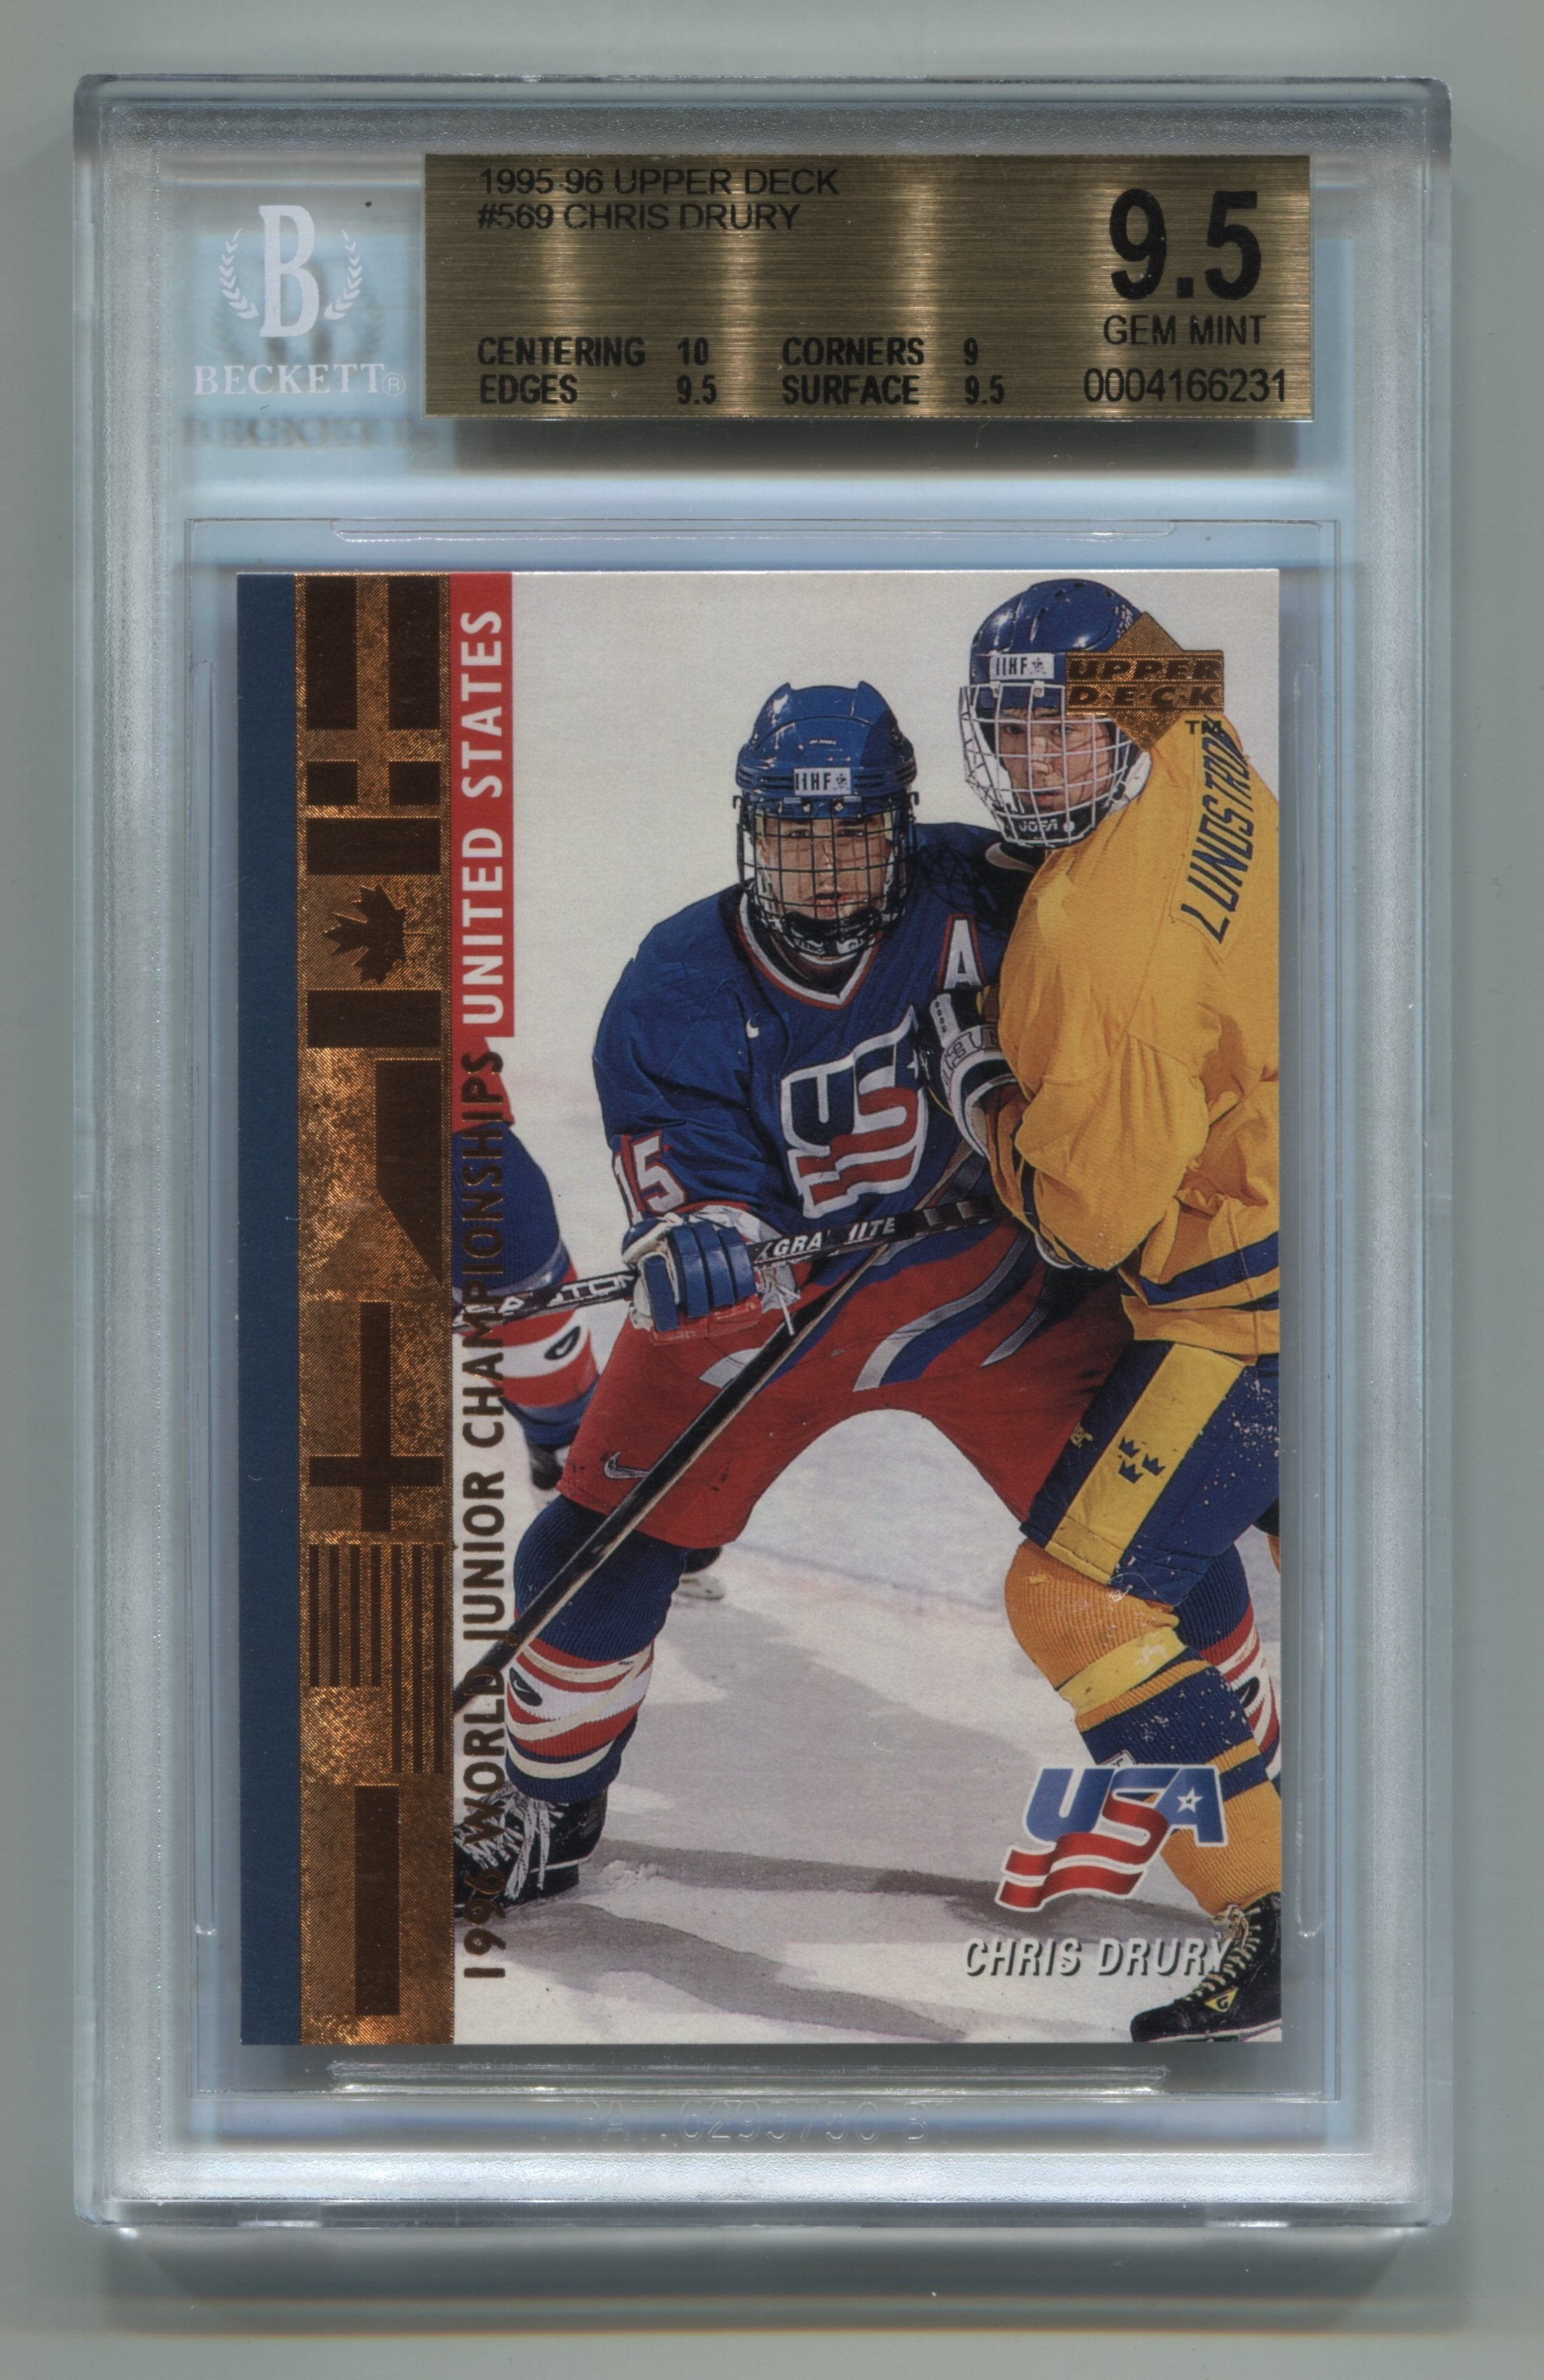 1995-96 Upper Deck #569 Chris Drury BGS 9.5 (Rookie) | Eastridge Sports Cards